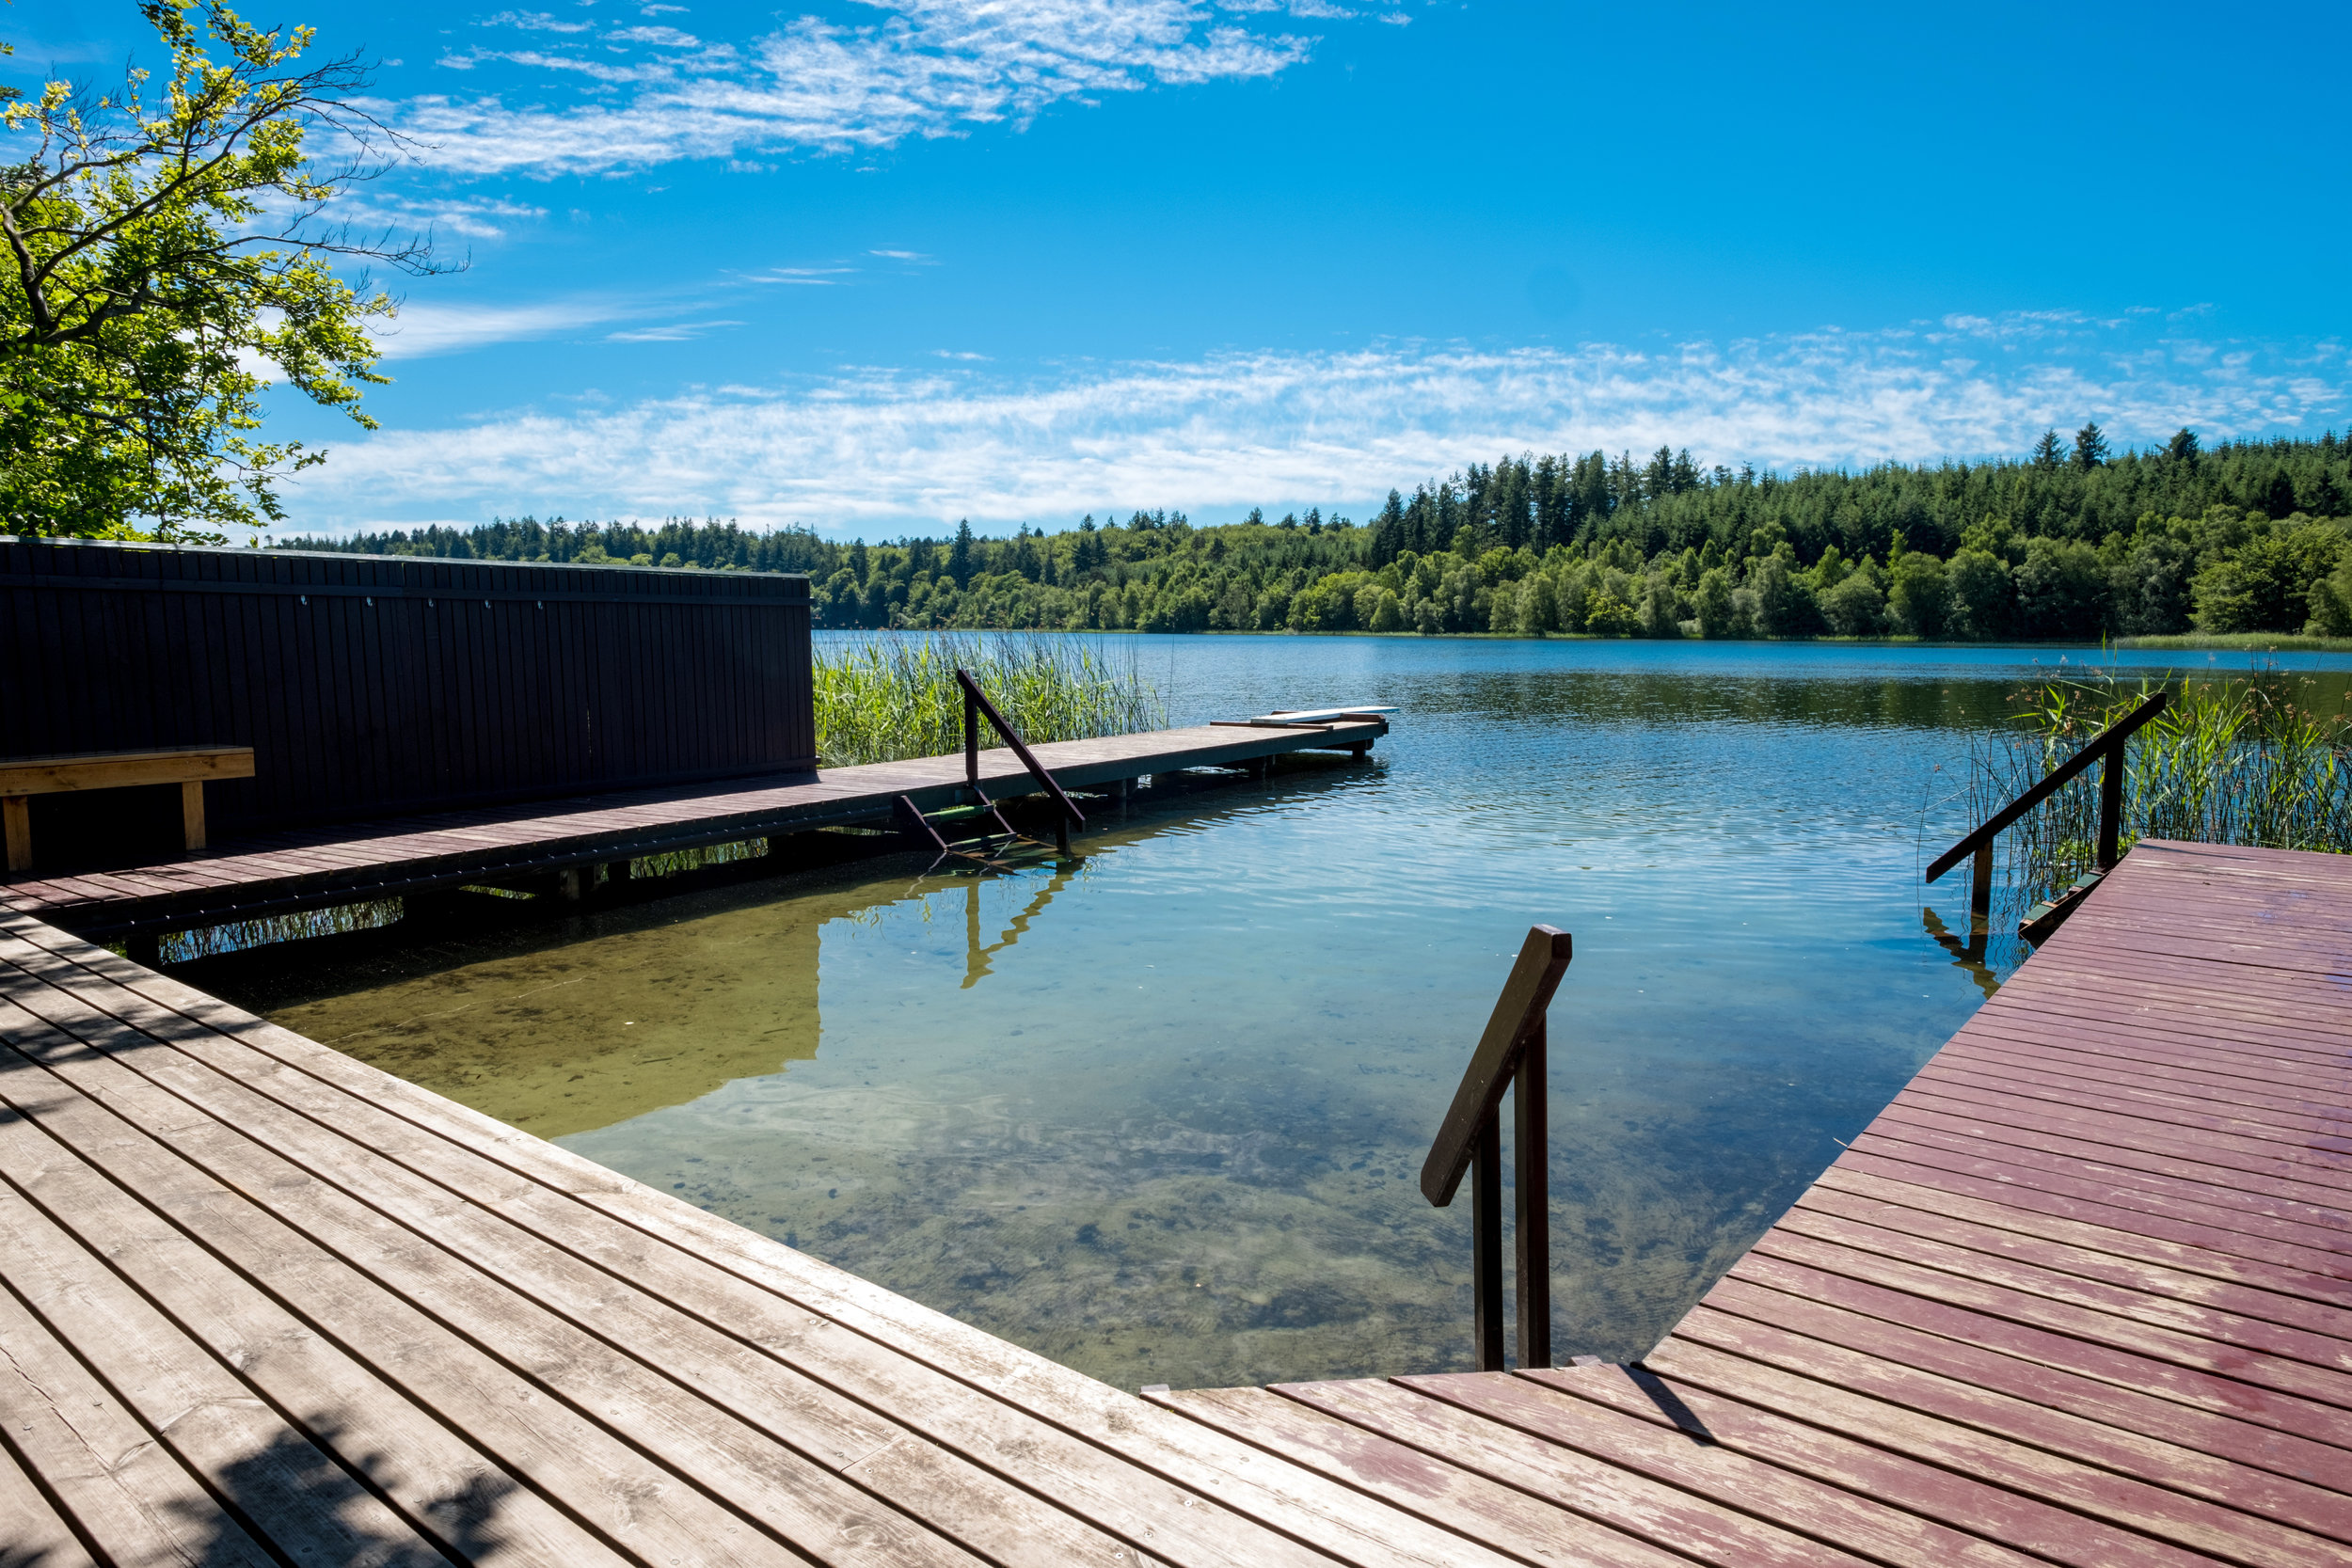 As a kid I visited Lars, Michael and Charlotte in Silkeborg almost every summer. We would visit this favourite spot of mine (Degnebadet). It is a private club, so I had to swim along the lake in order to see it again. Di handed me the camera over the fence so that I could take this quick snap. Definitely one of those spots which are huge in your memory but in reality small in scale. We had such good times here.